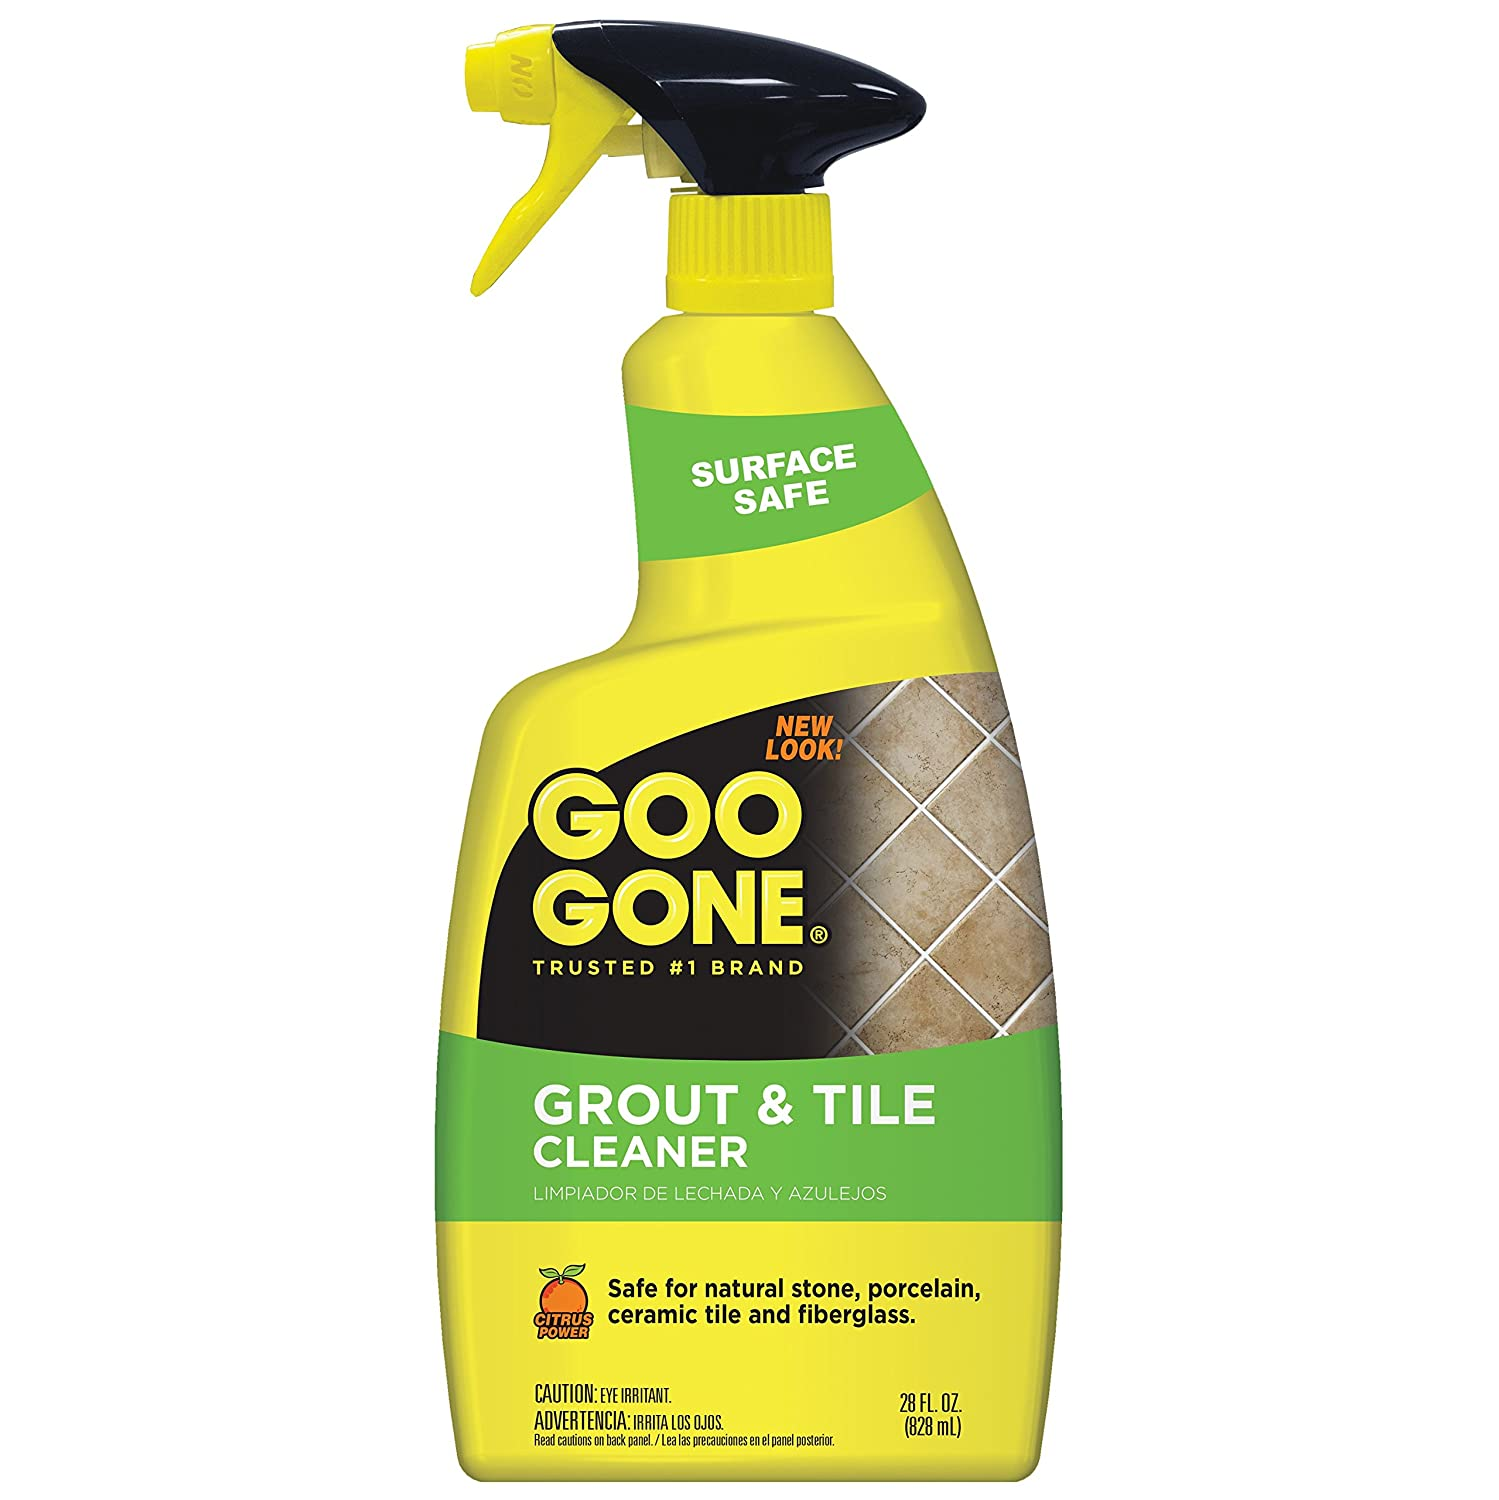 Amazon goo gone grout tile cleaner stain remover works amazon goo gone grout tile cleaner stain remover works great on grout in ceramic marble tile 28 fl oz health personal care dailygadgetfo Gallery